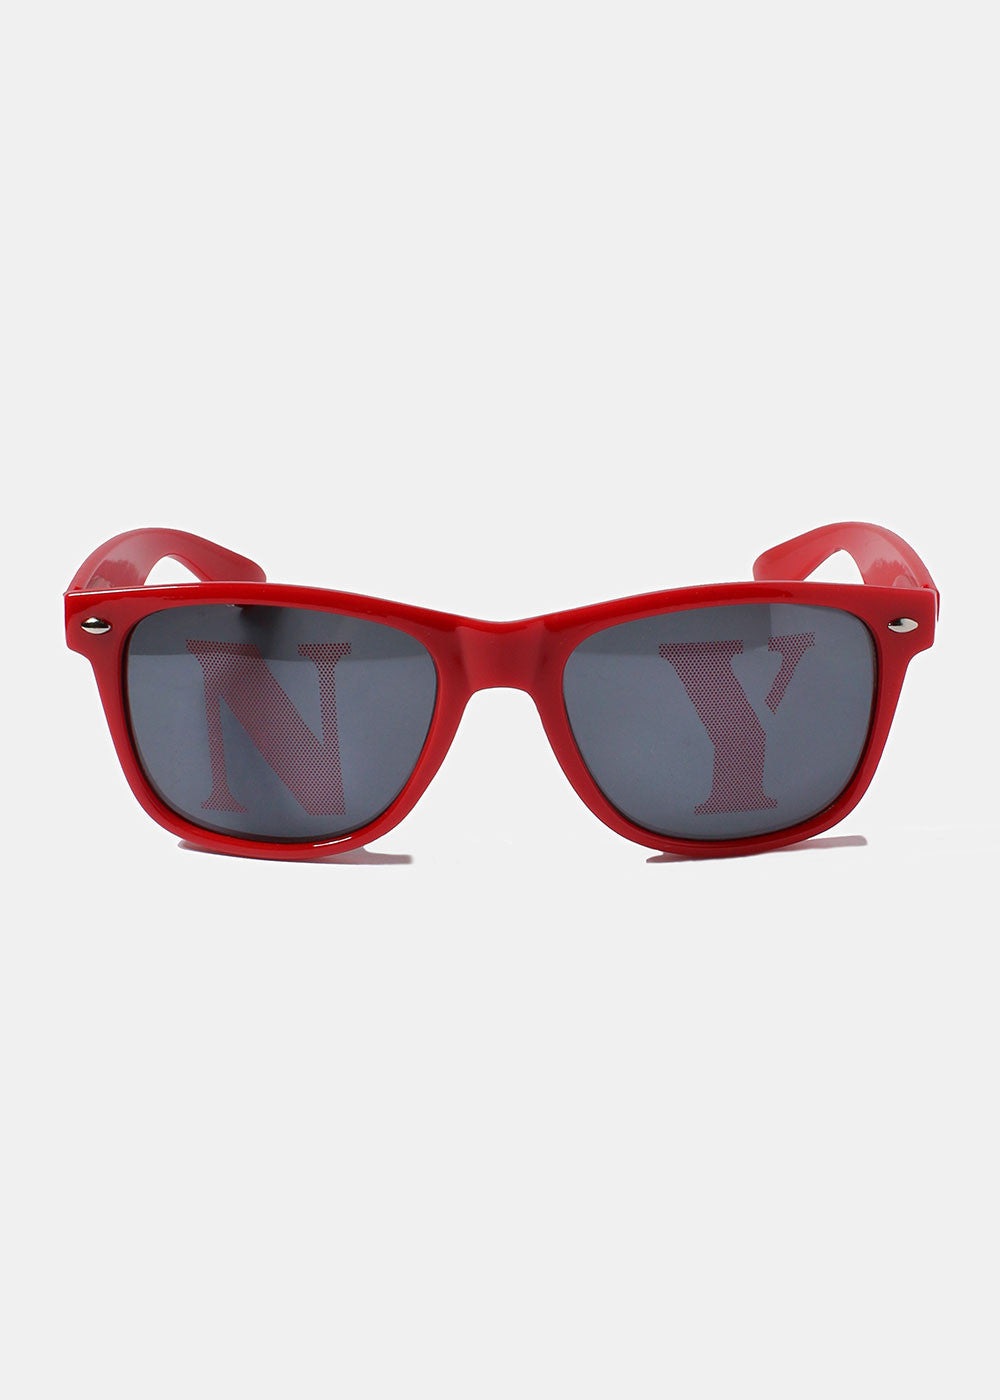 NY Square Sunglasses- Red